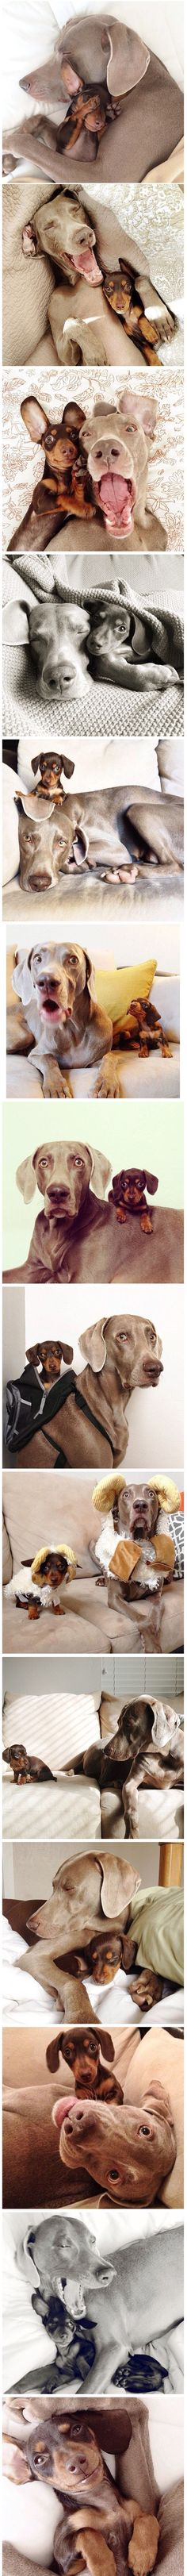 I follow them on Instagram - they're so cute!! Follow them -harlowandsage